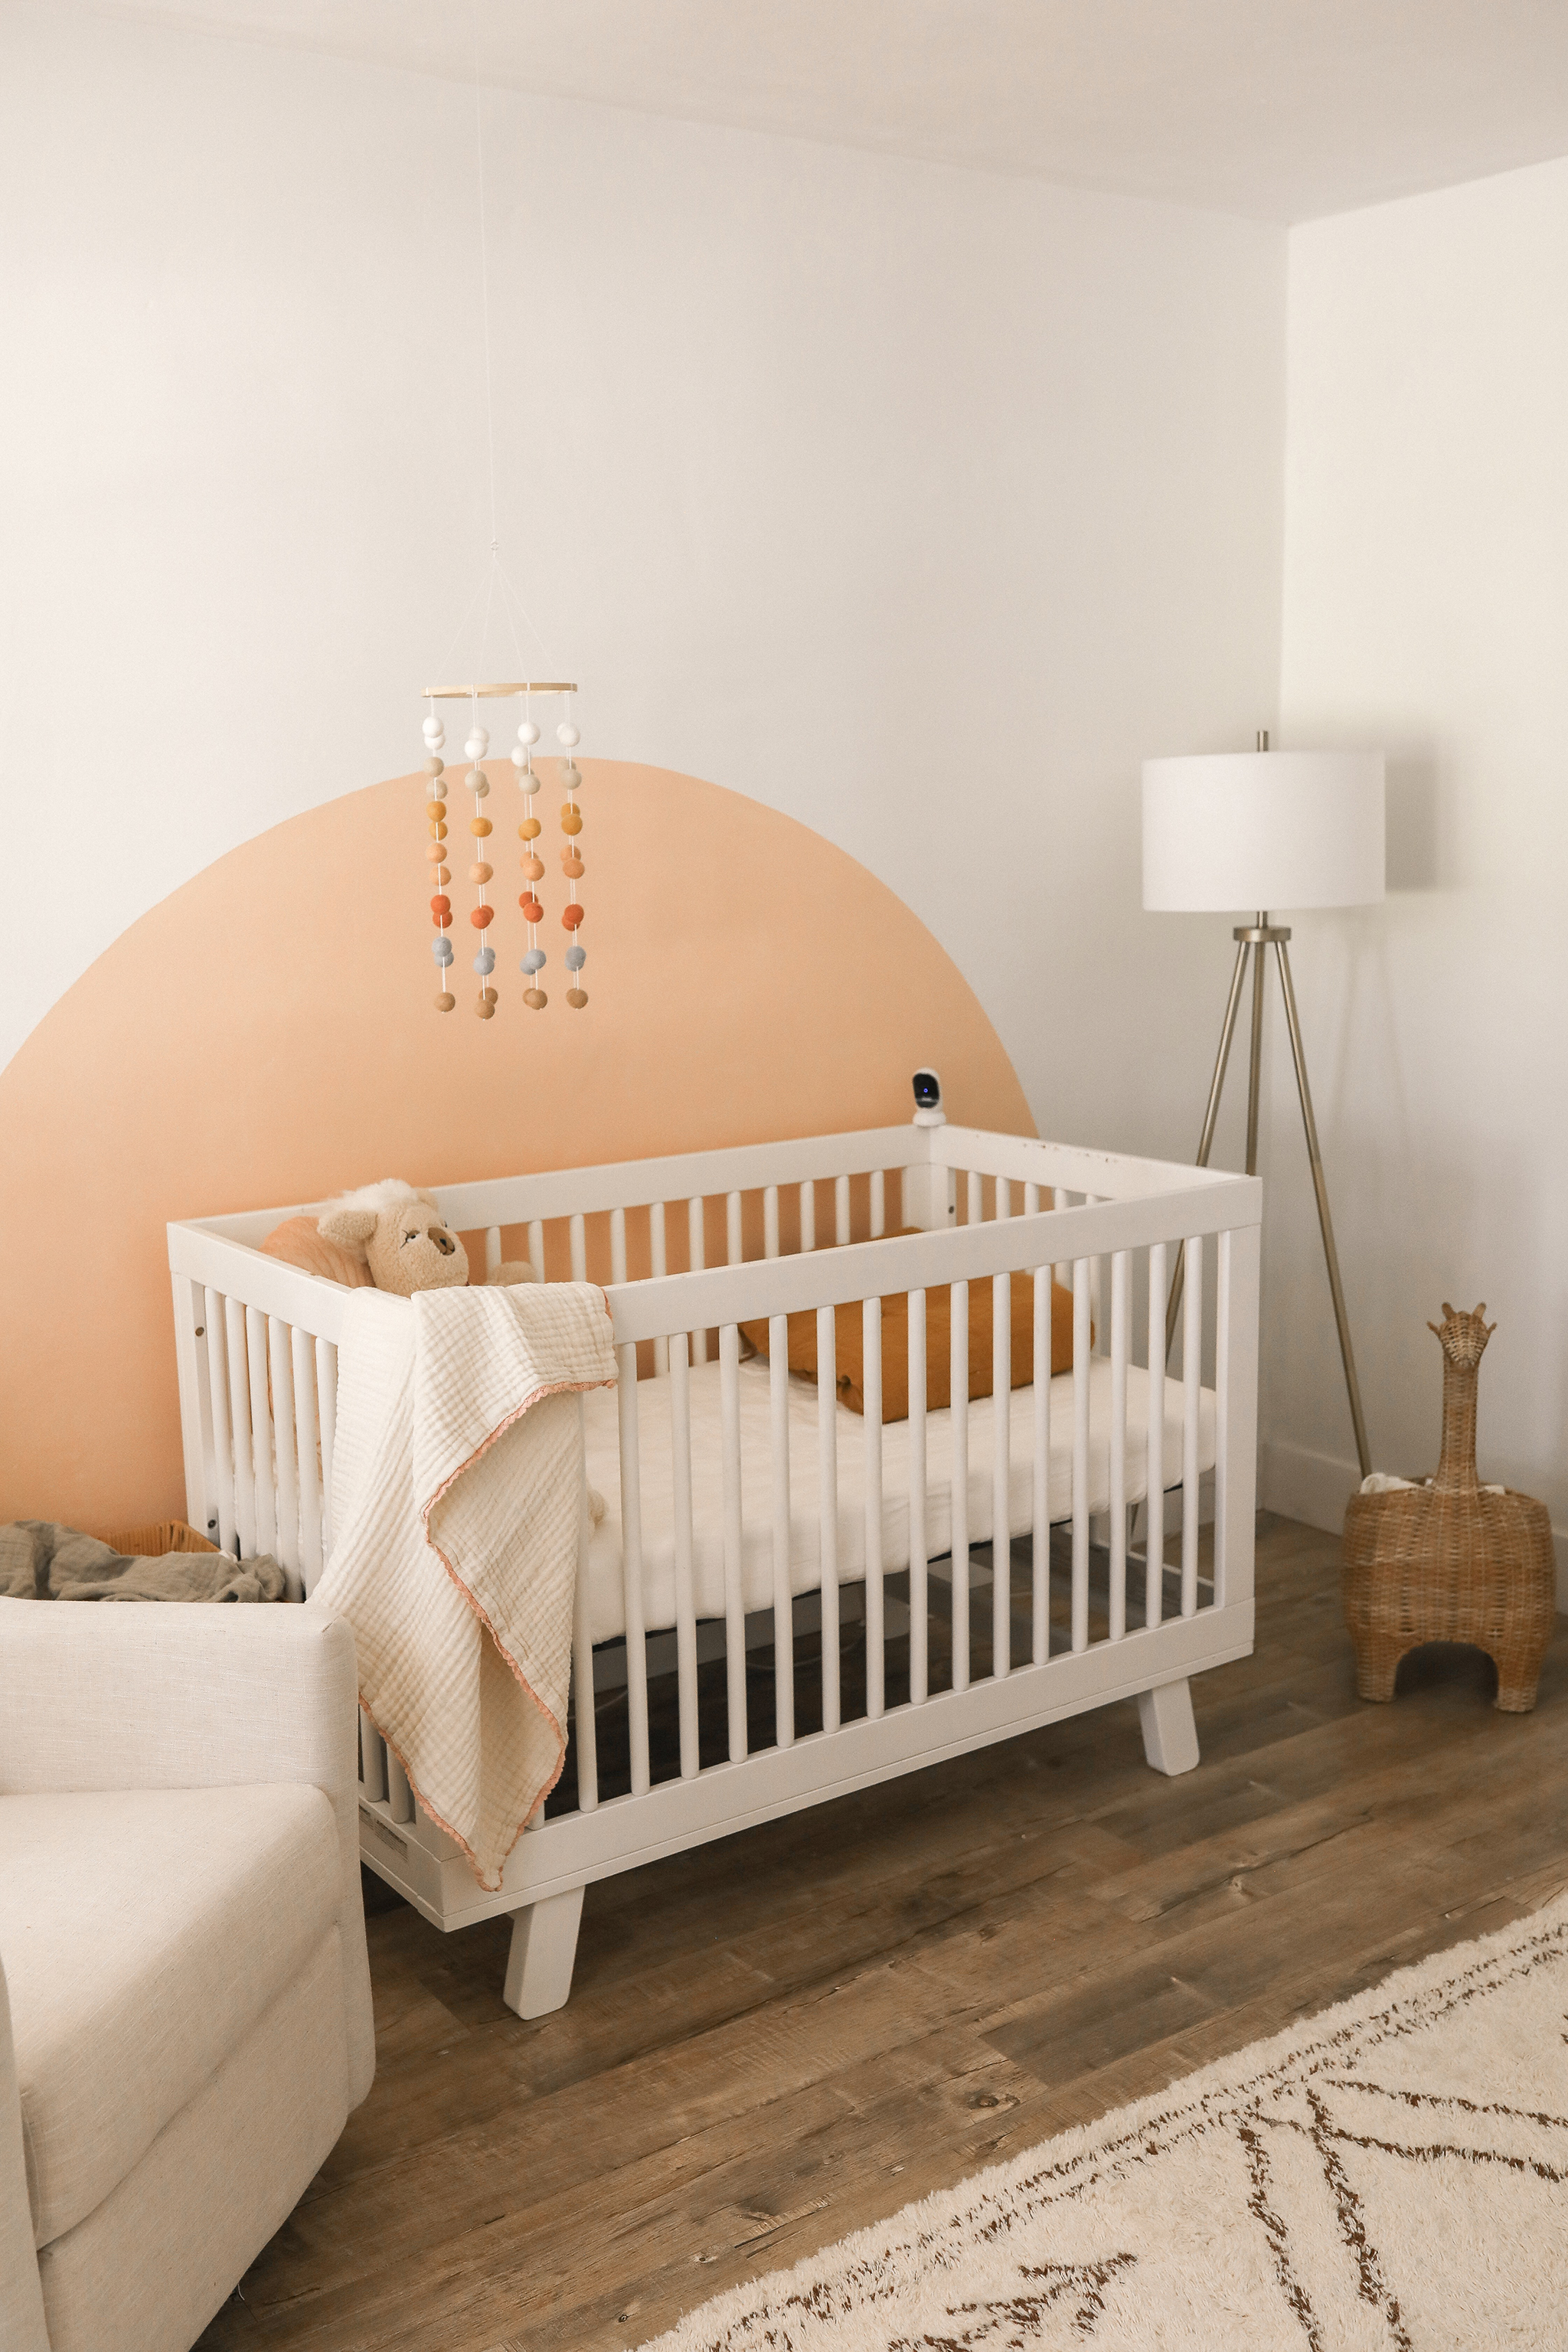 Peach Nursery with Painted Arch behind the Crib designed by Tayler Golden